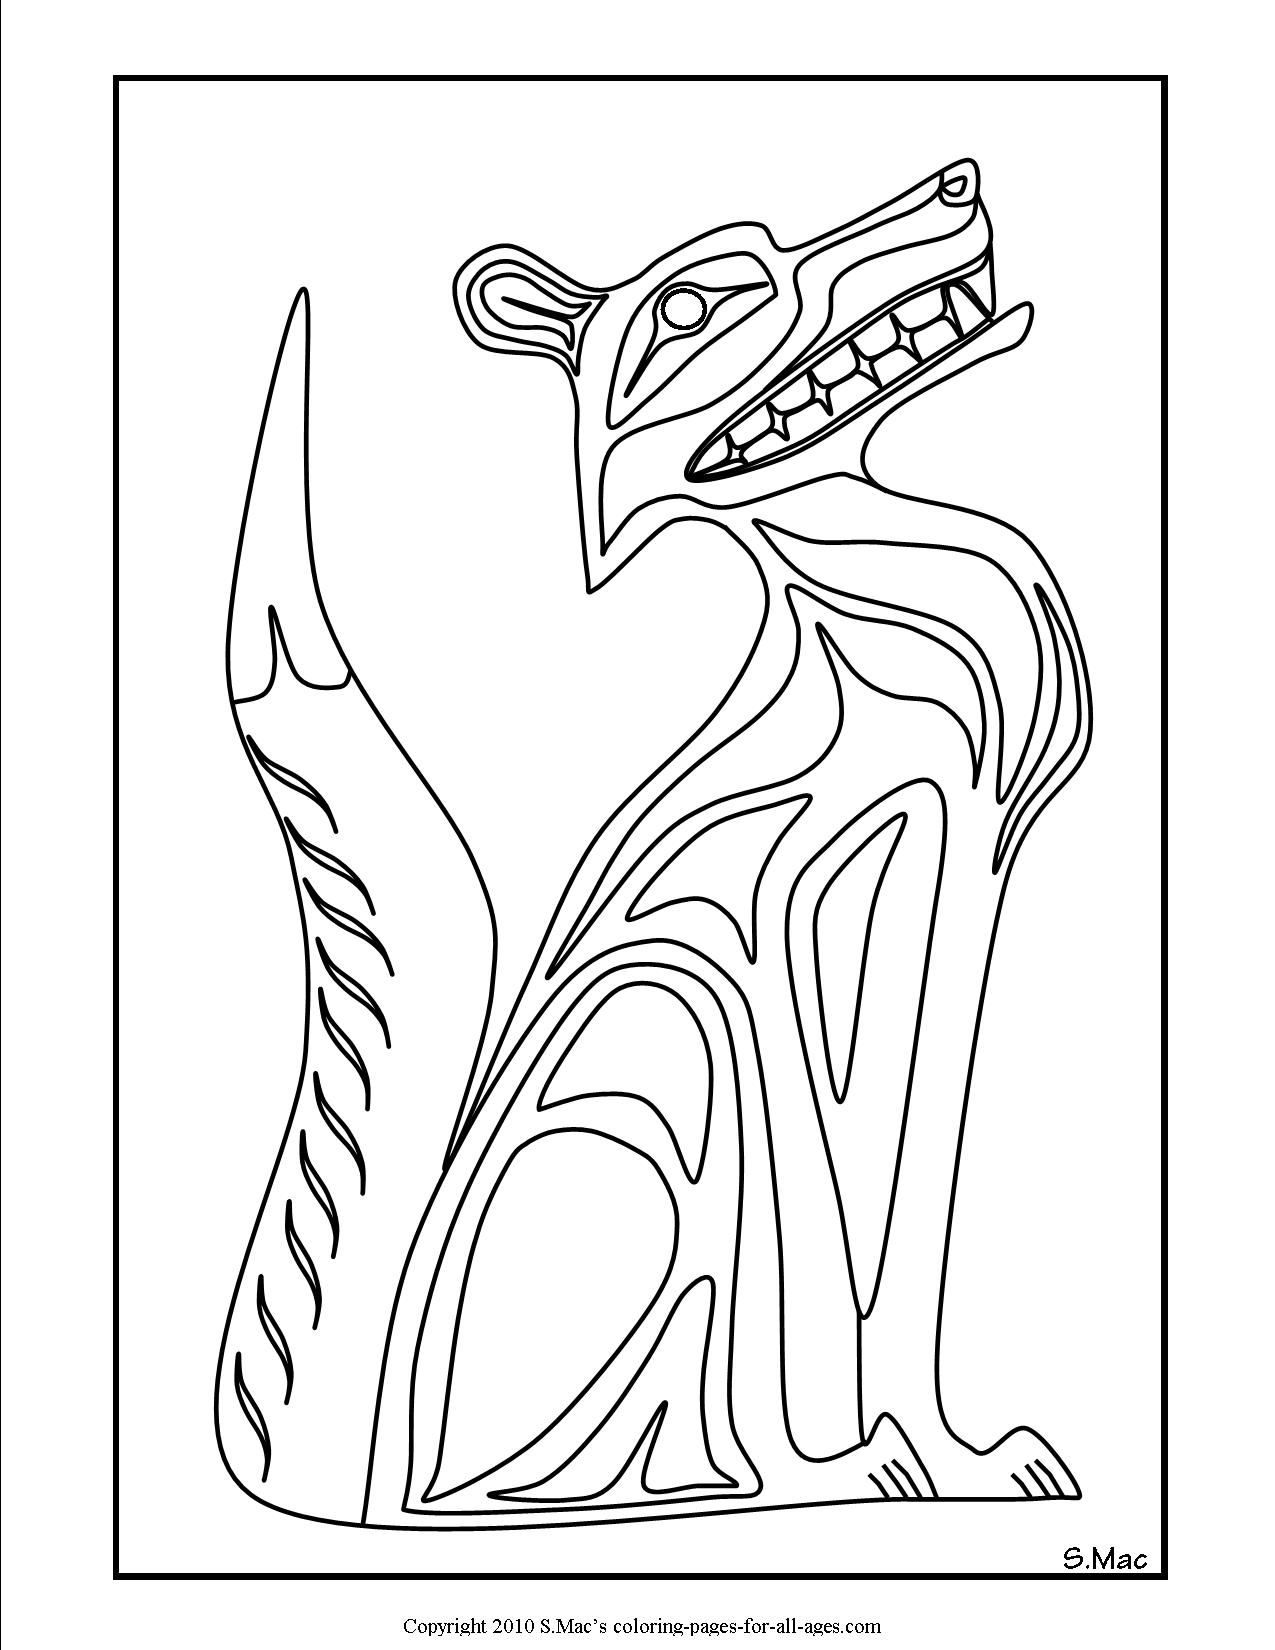 my interpretation of pacific northwest native american art pacific northwest native american art coloring pages reflect the connection the indigenous people - Symbols America Coloring Pages